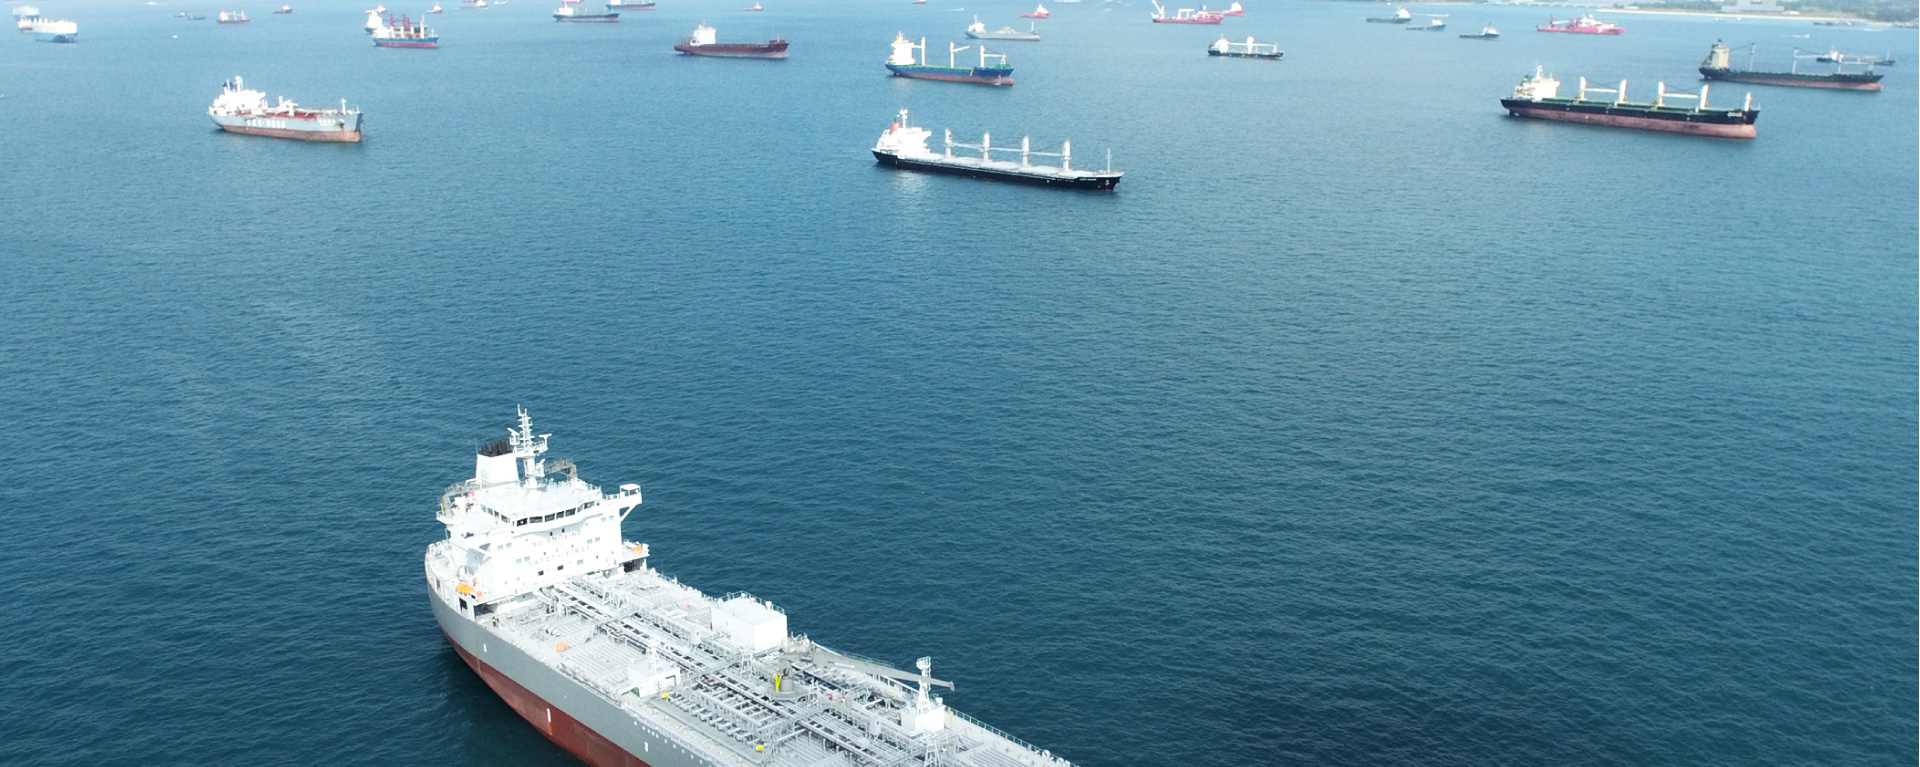 Central Ship Chartering Inc.